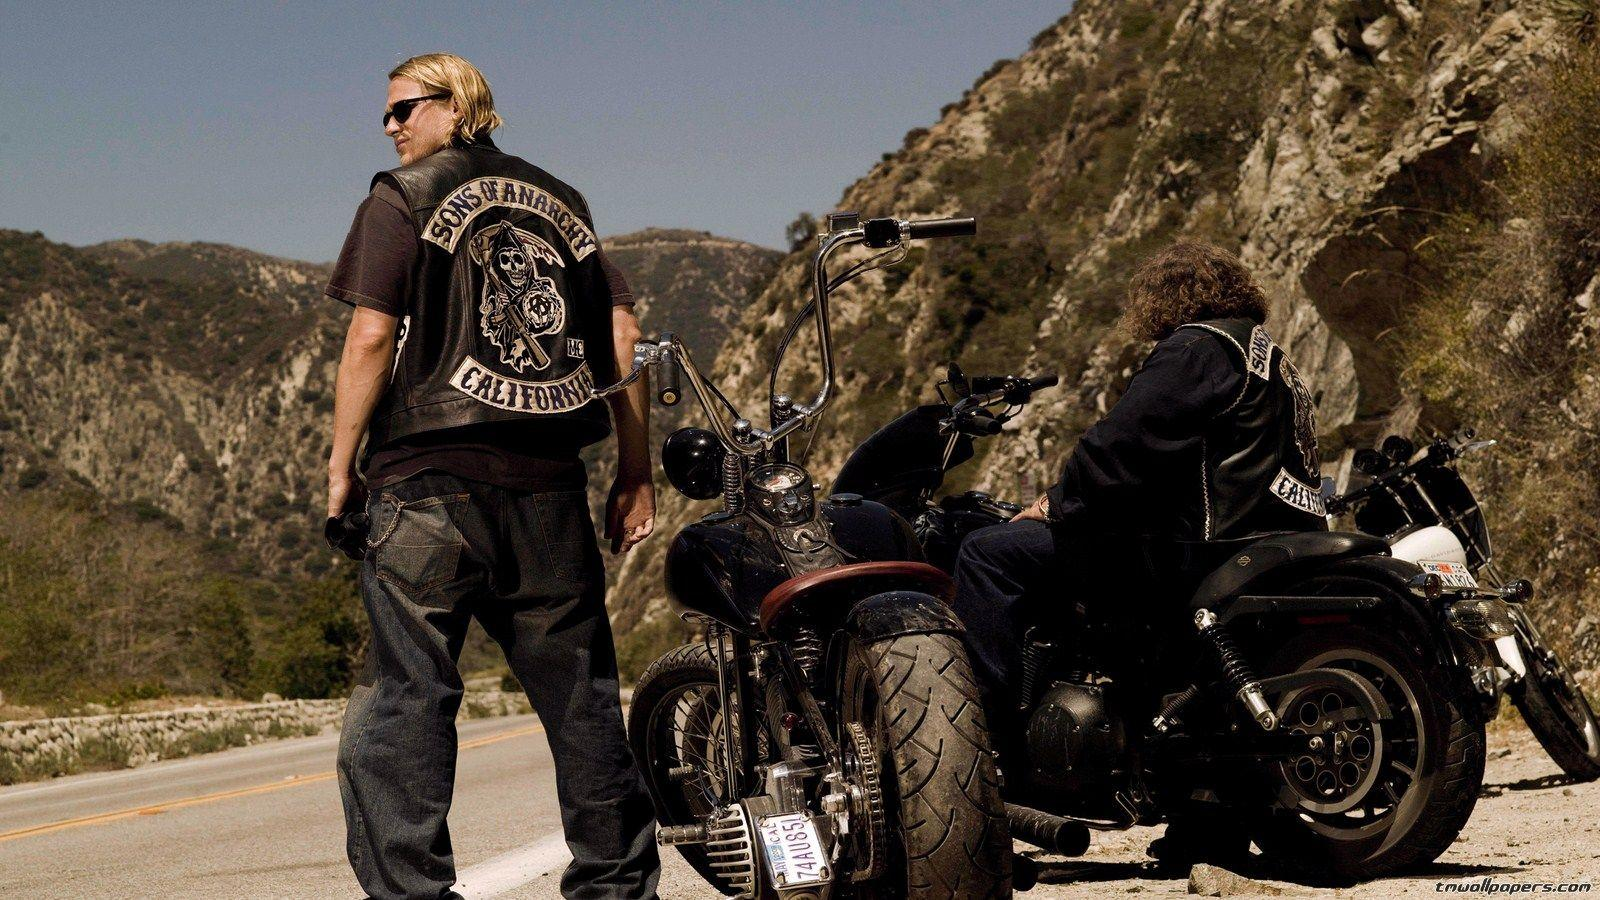 Sons of anarchy pictures for sale